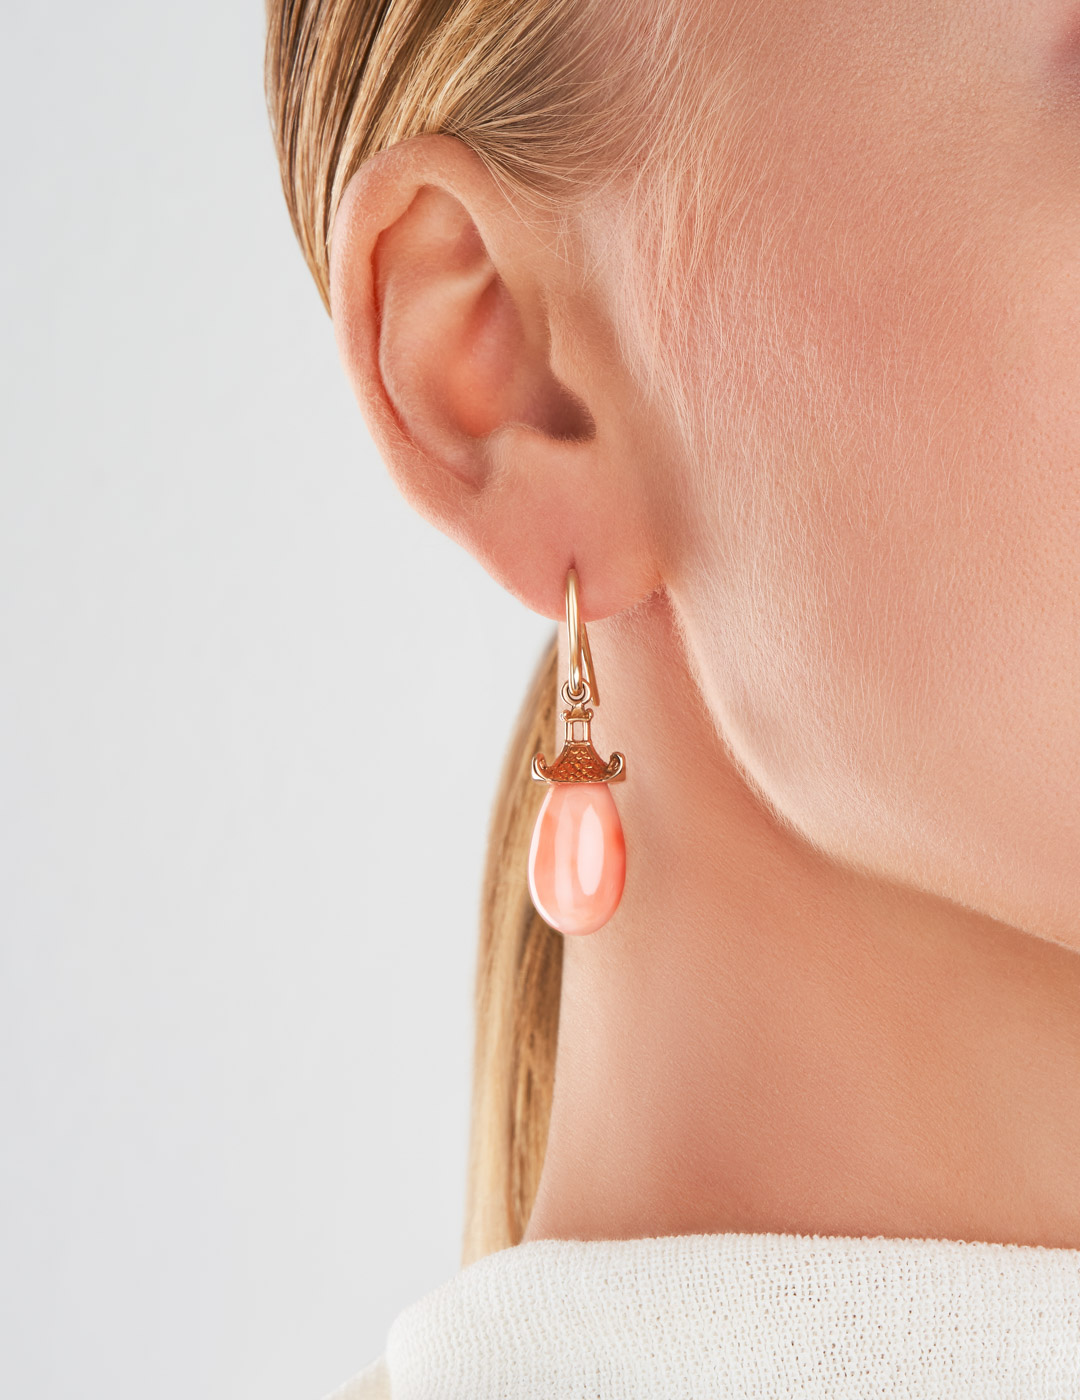 mish_products_earrings_Pagoda-PinkCoral-ER-2